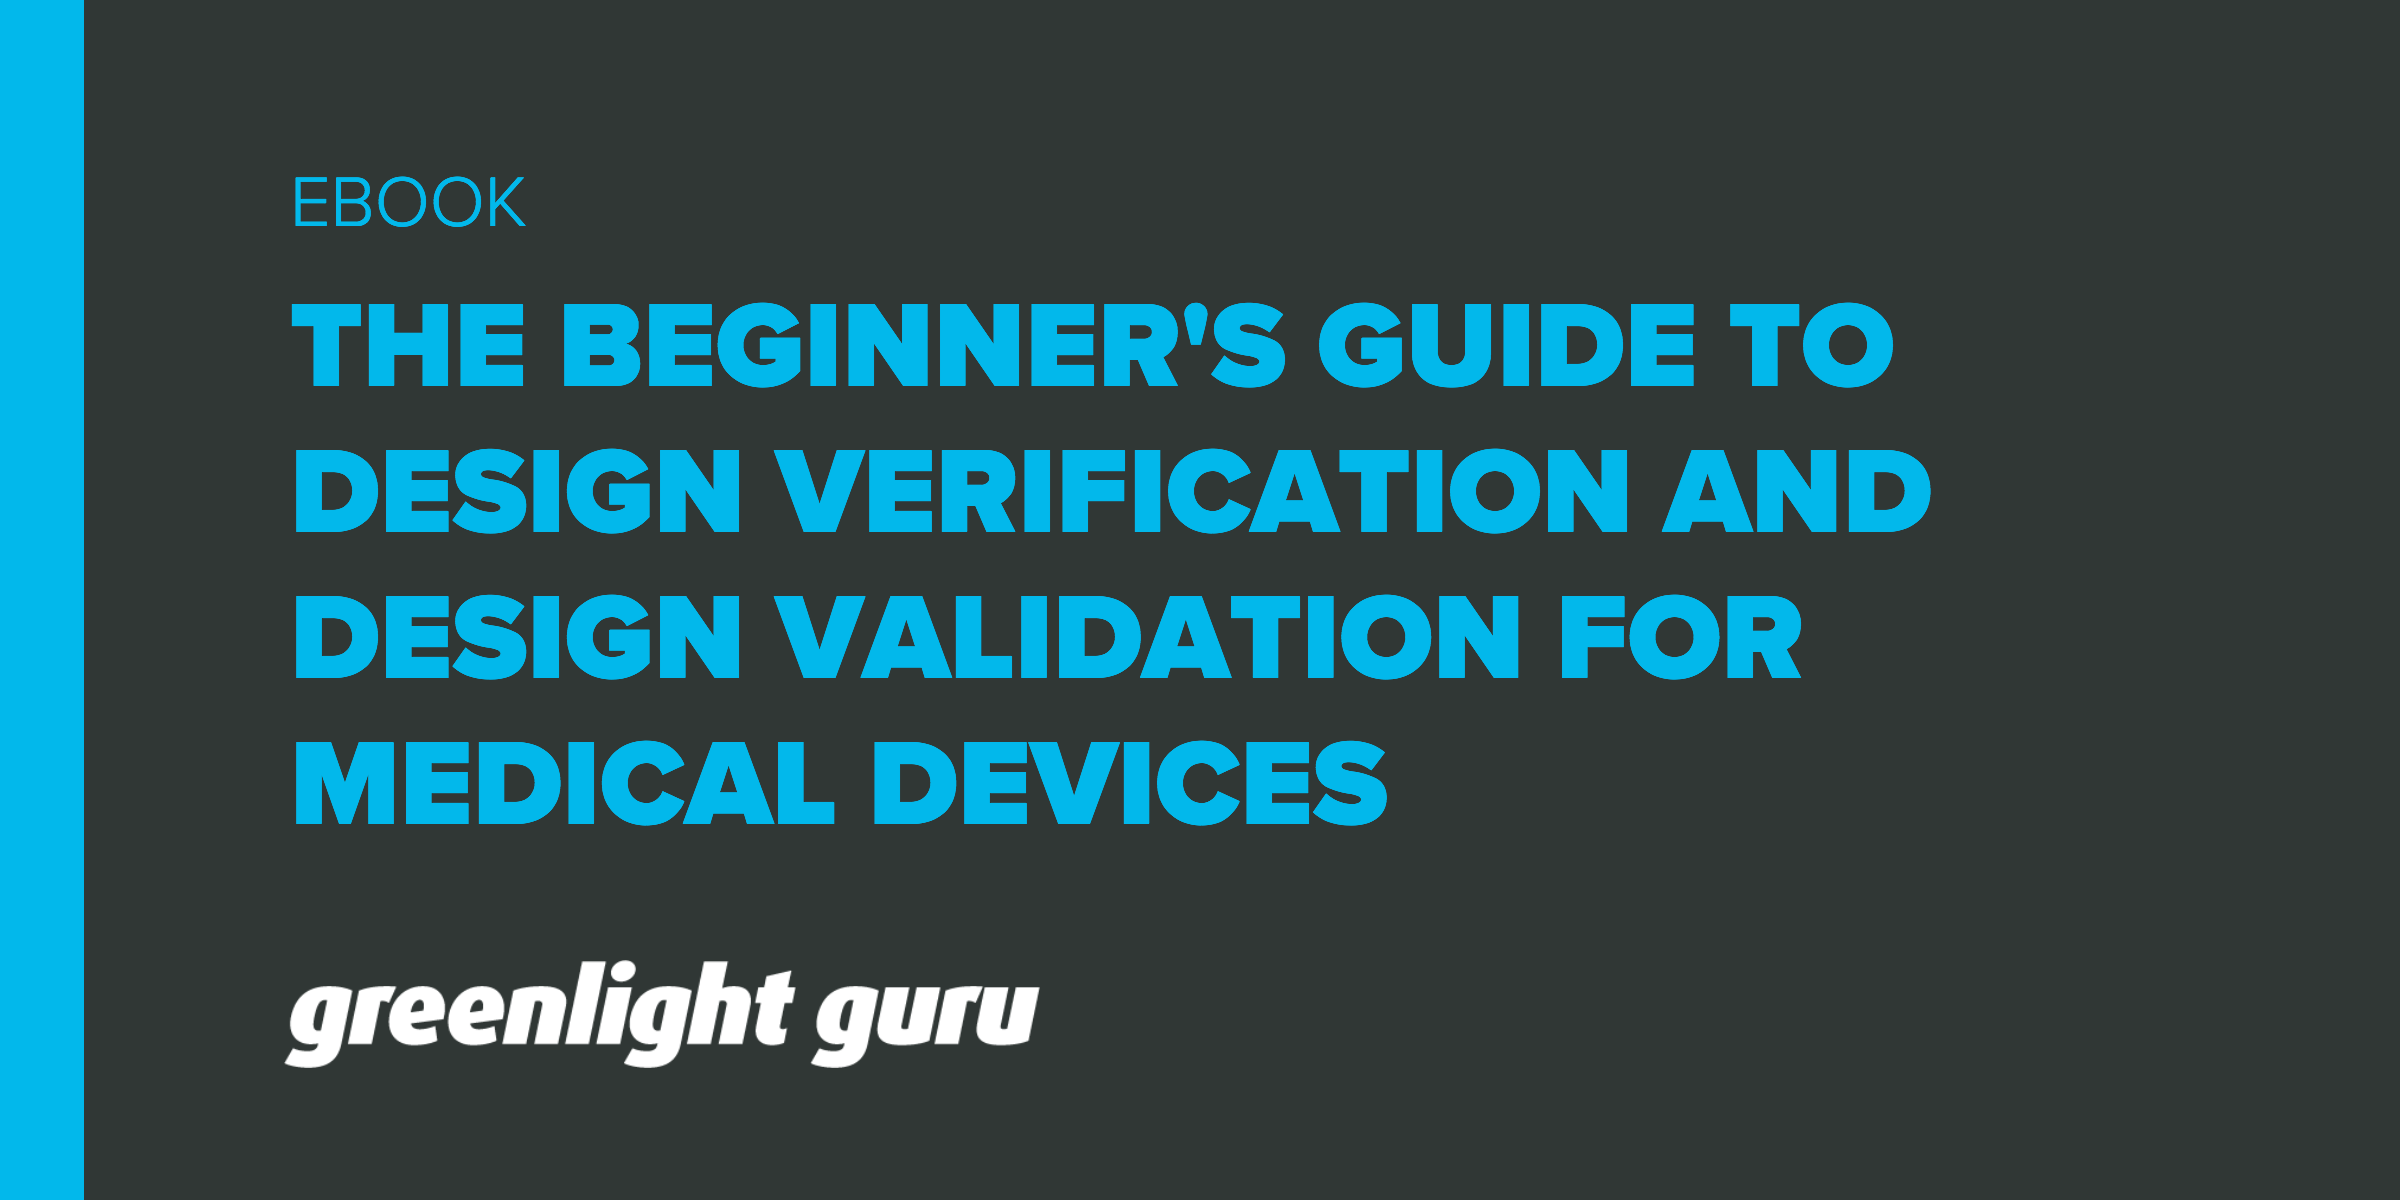 The Beginner S Guide To Design Verification And Design Validation For Medical Devices